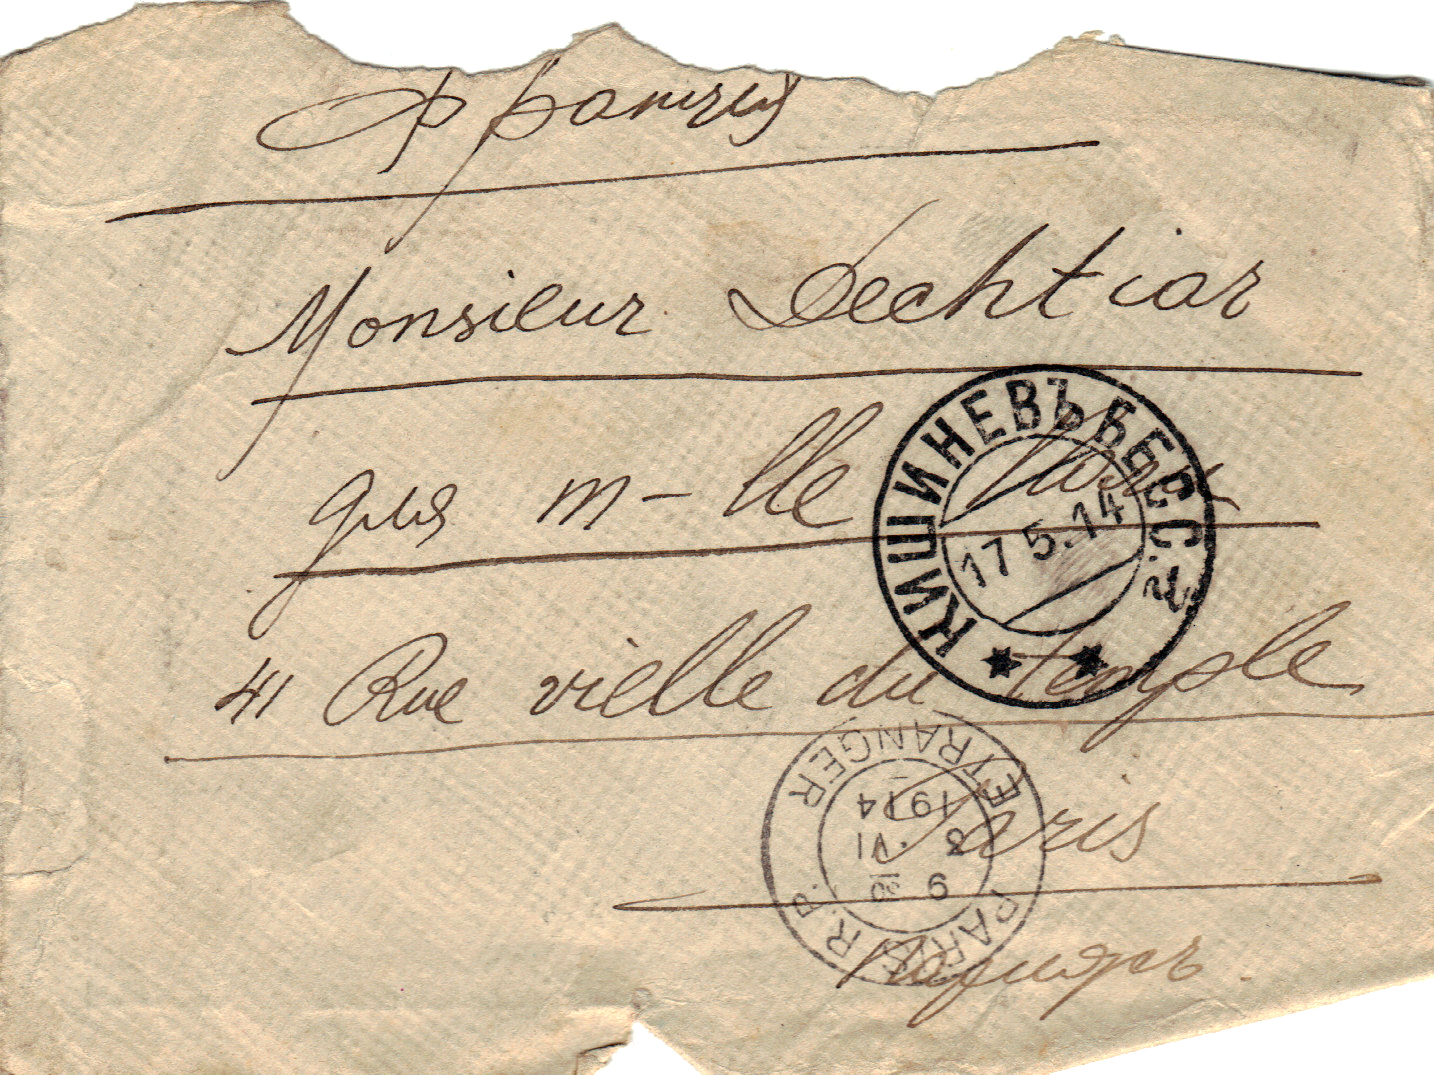 Note to Polya from Nissandoma May 17, 1914 envelope A